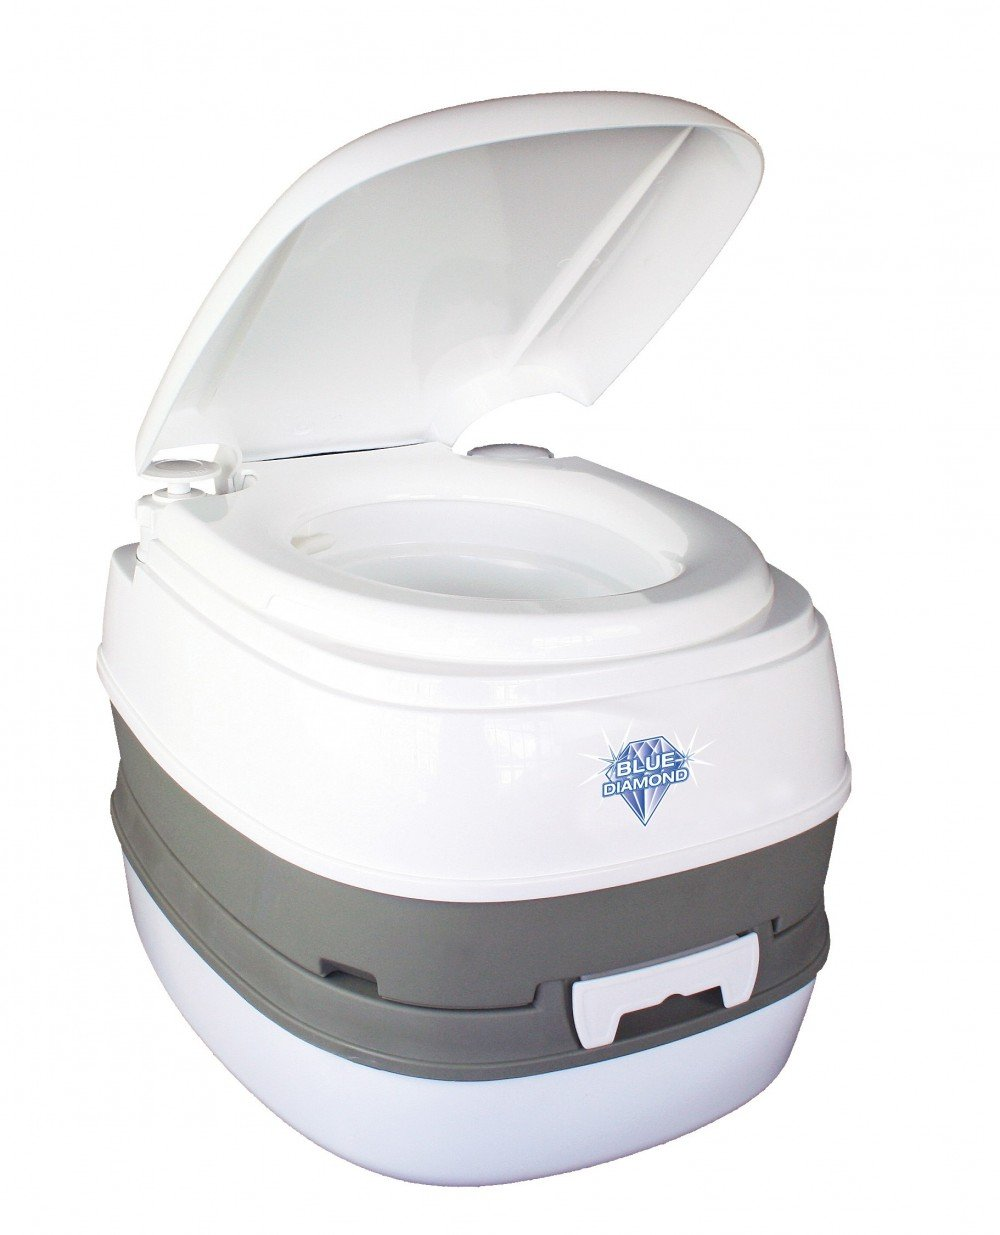 Blue Diamond Portable Camping Toilet